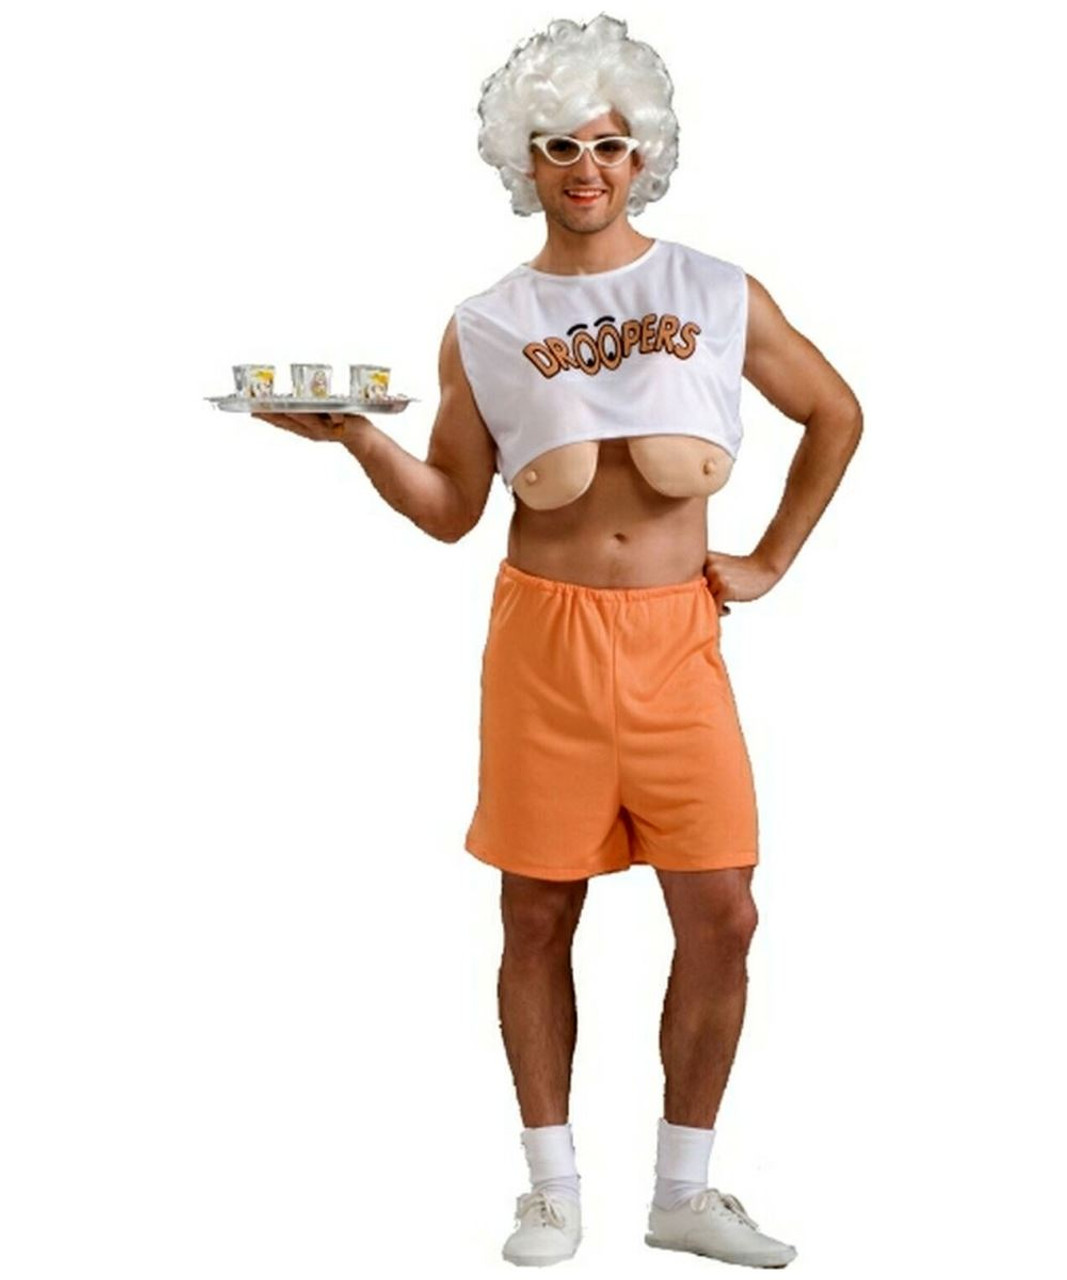 HOOTERS DROOPERS Adult Long Boobs Humor Mens Waitress